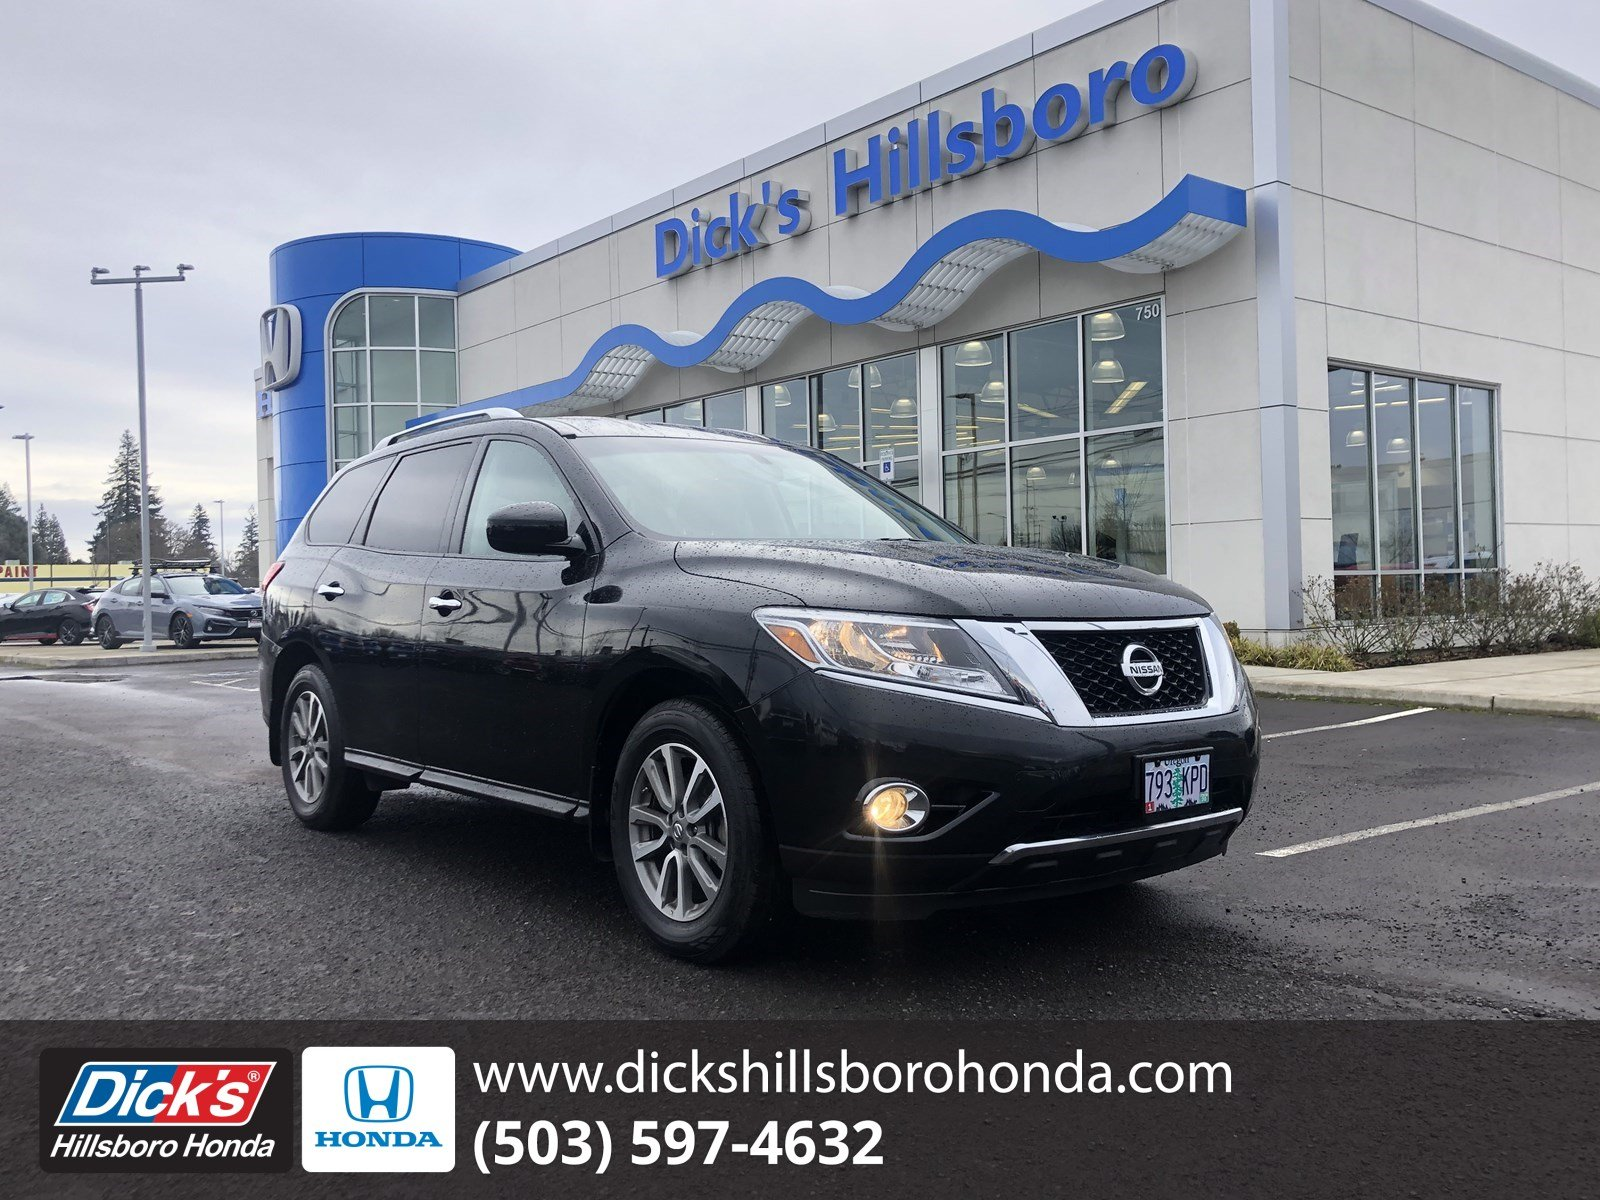 Pre-Owned 2016 Nissan Pathfinder S